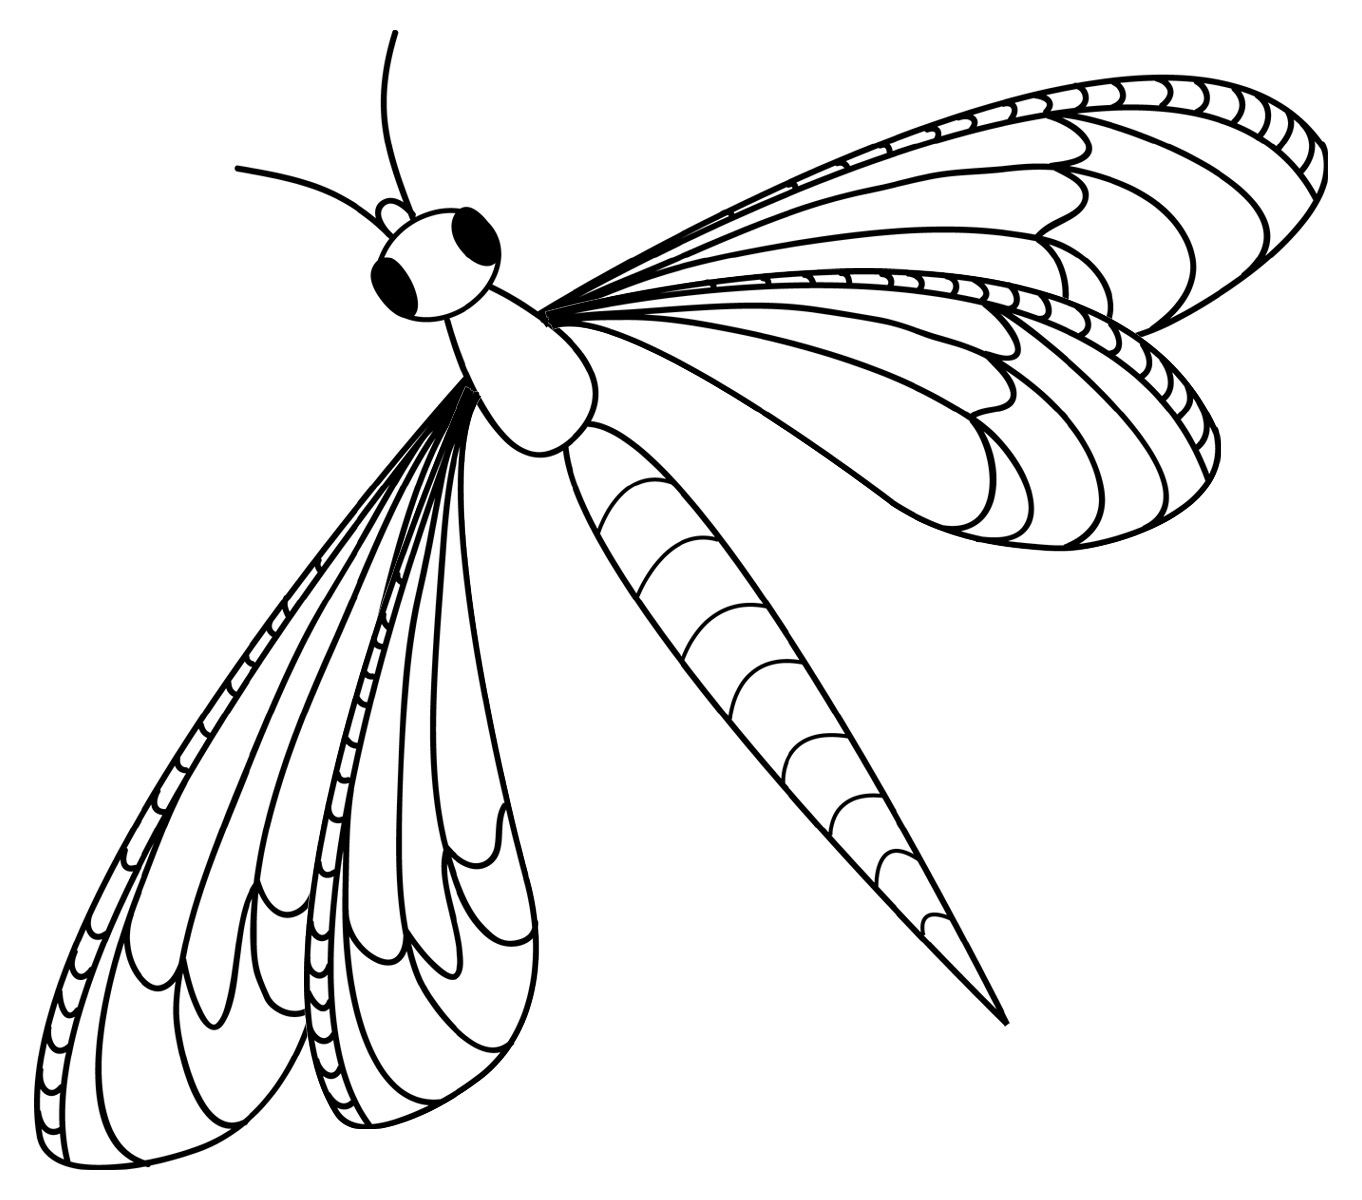 Dragonfly clipart printable. Free coloring pages for